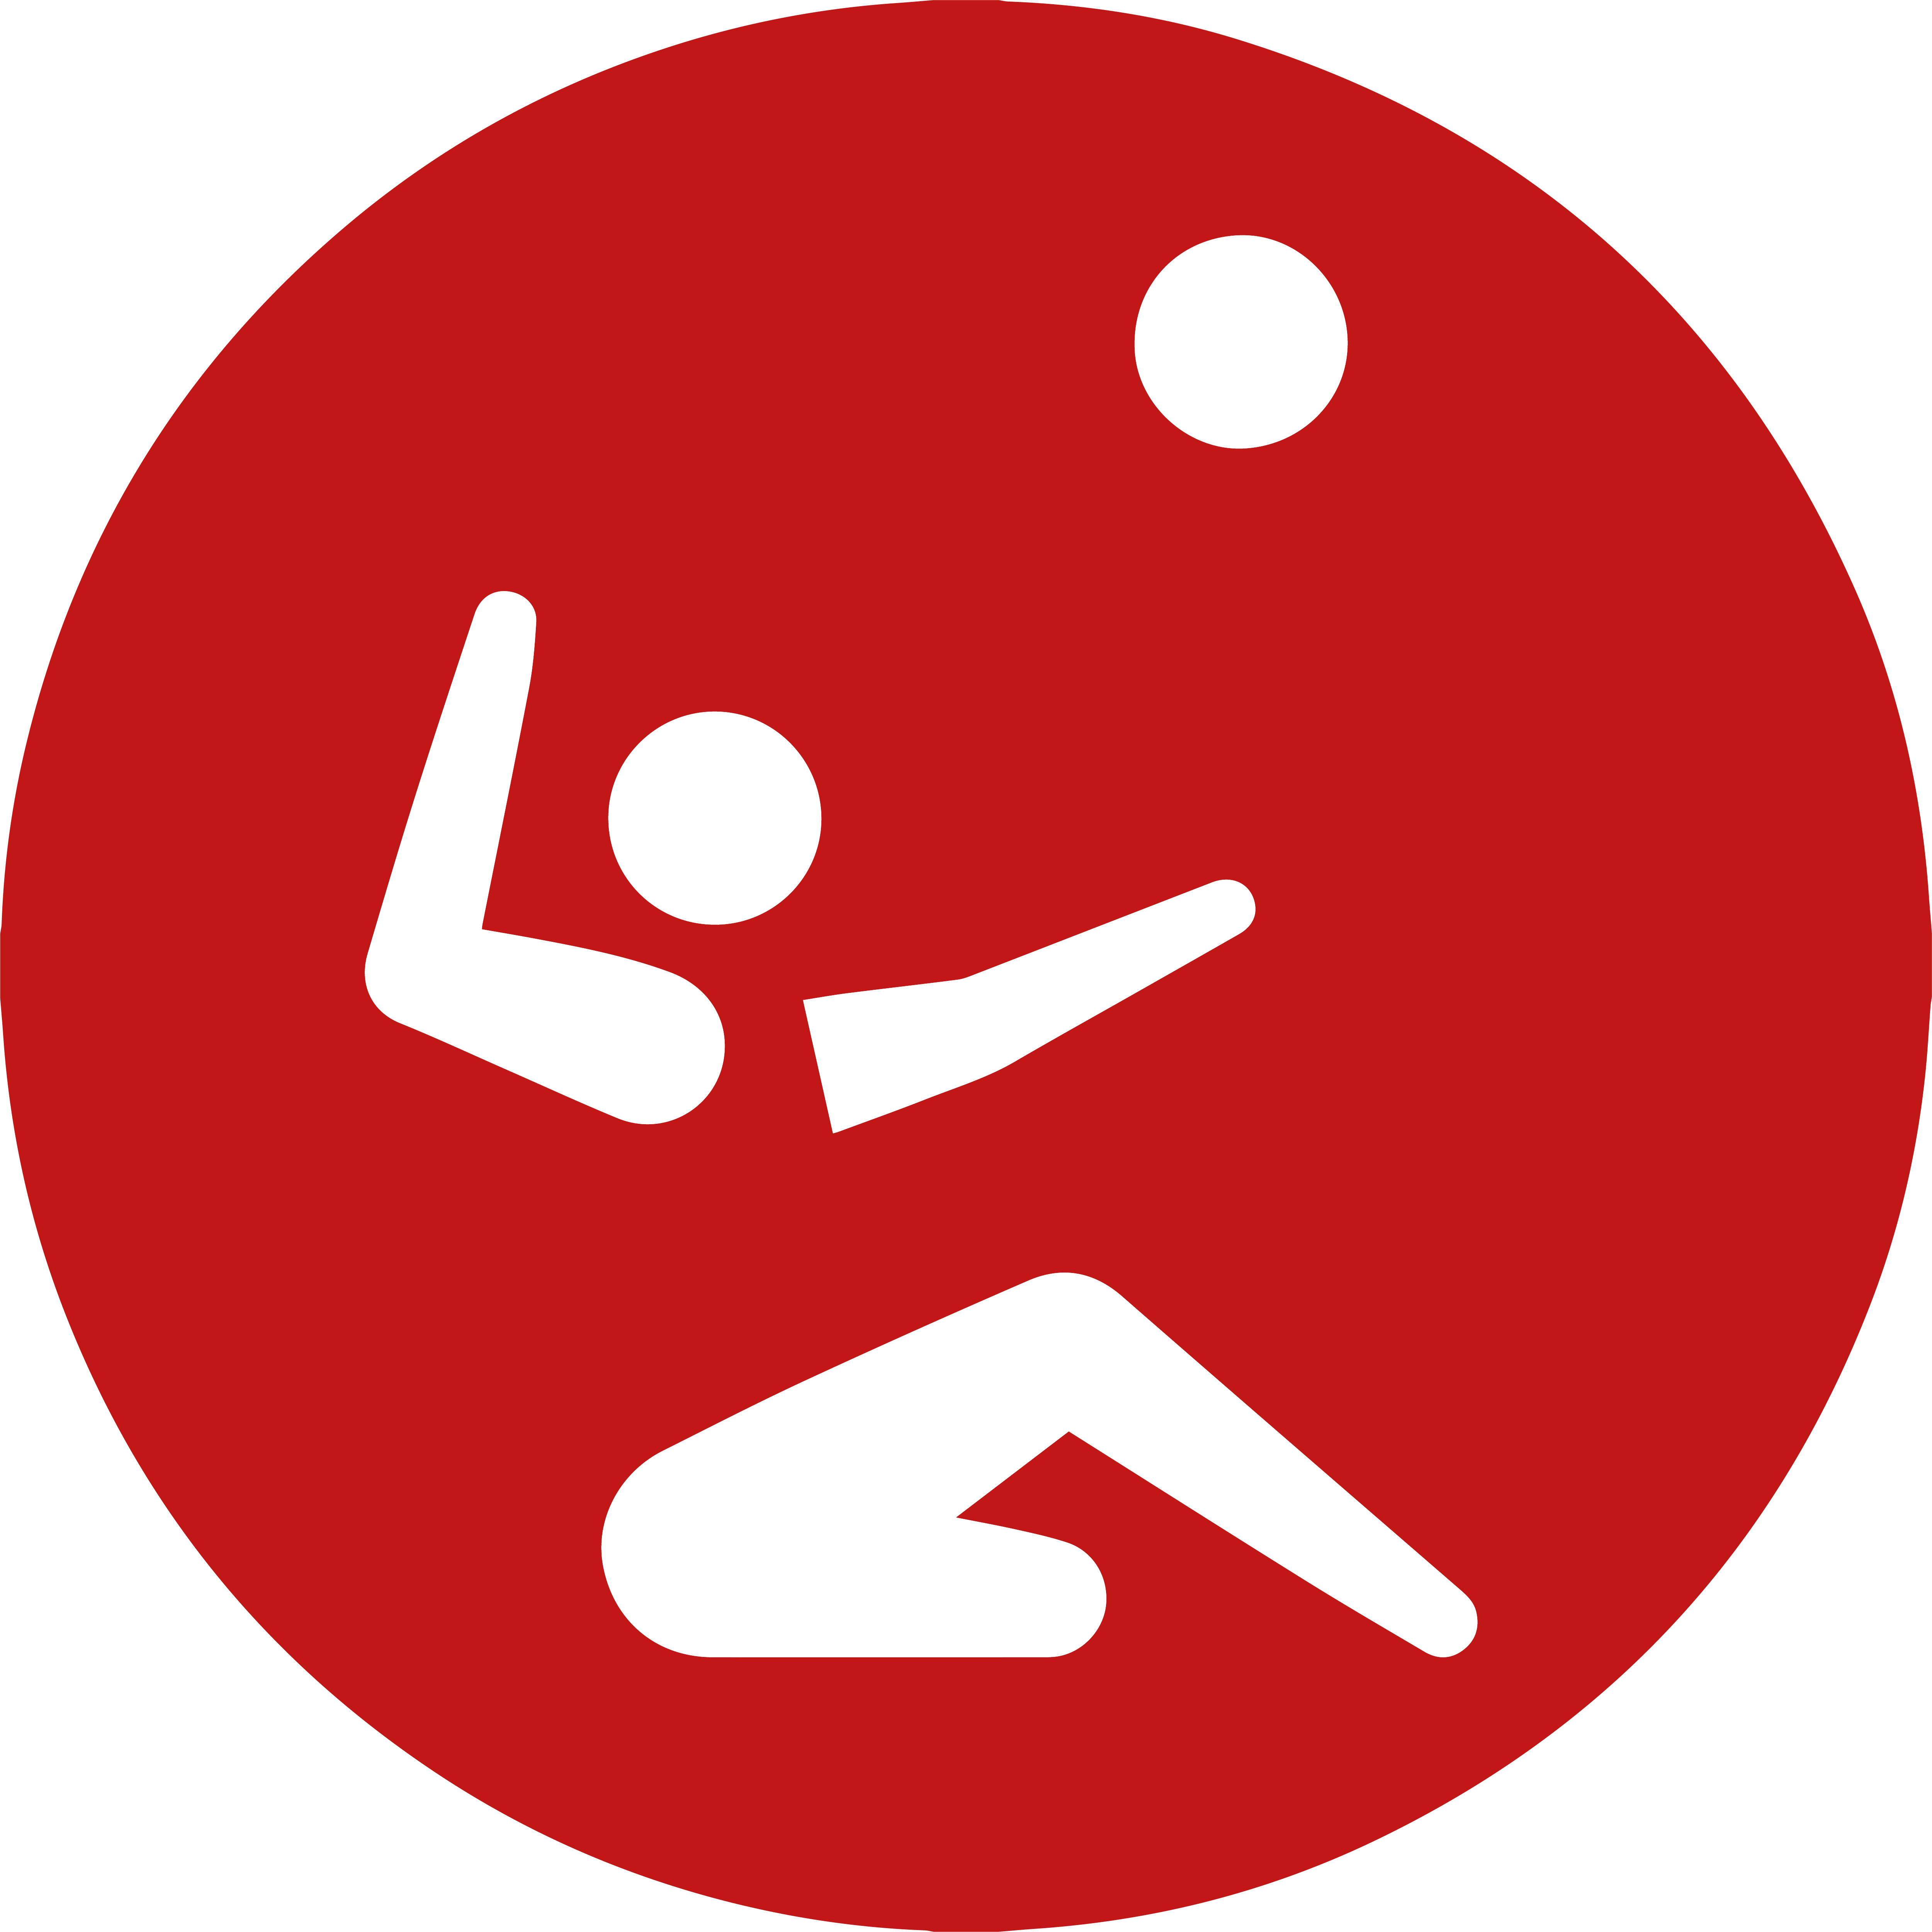 Sitting Volleyball Placeholder